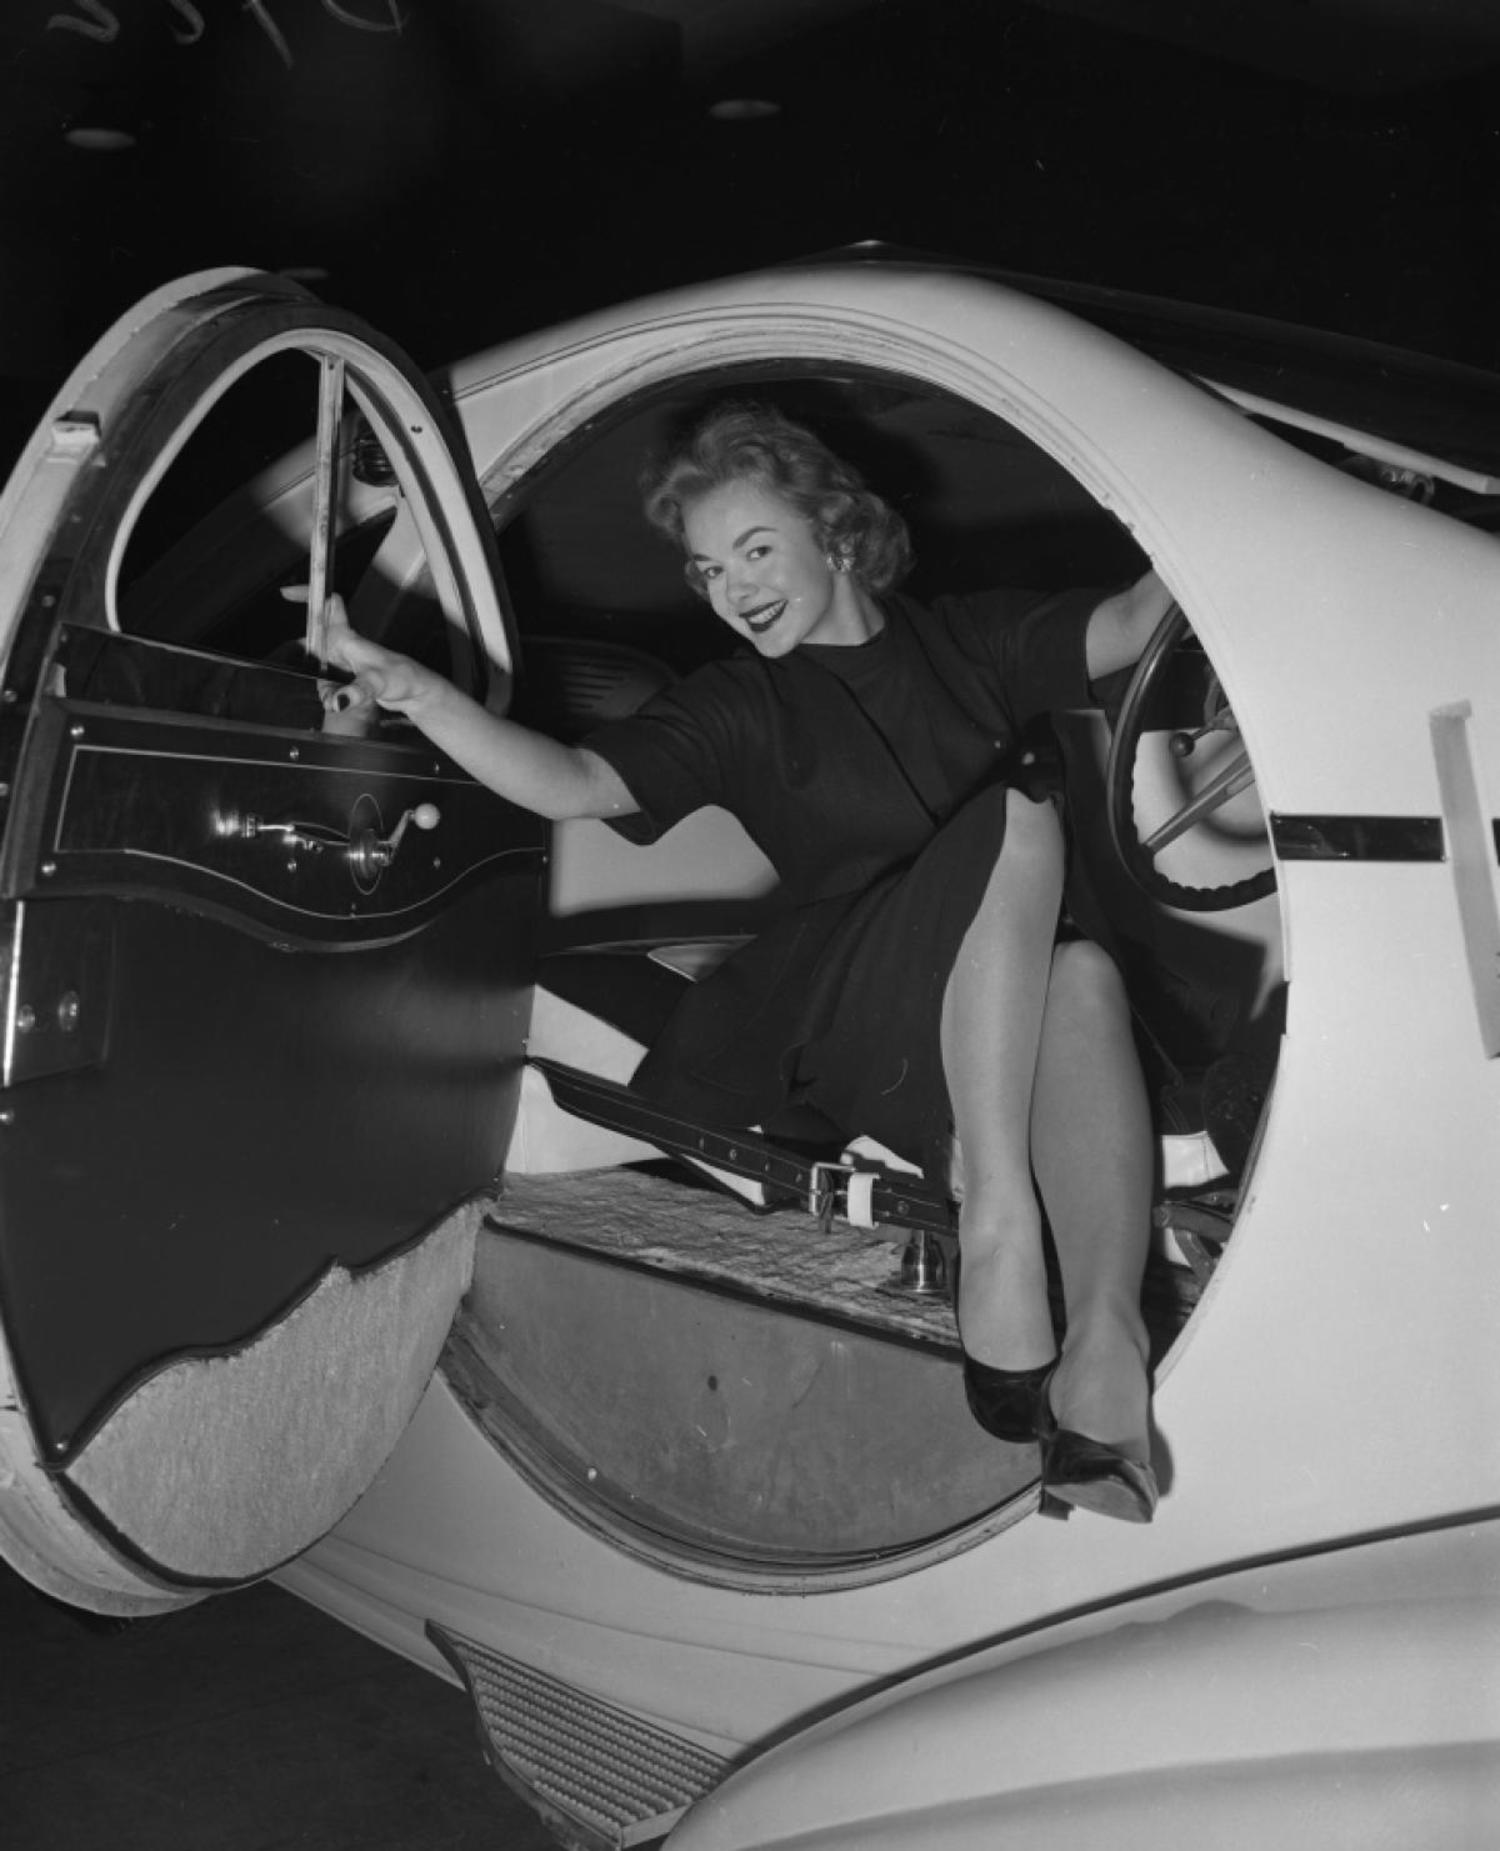 """Notice those lines? It's really a dream. Every man should have one. It's the $100,000 Rolls-Royce sports car. Oh, the girl? She's model Marjorie Holler,"" read the original Daily News caption for this photo from the Motor Sports Show."